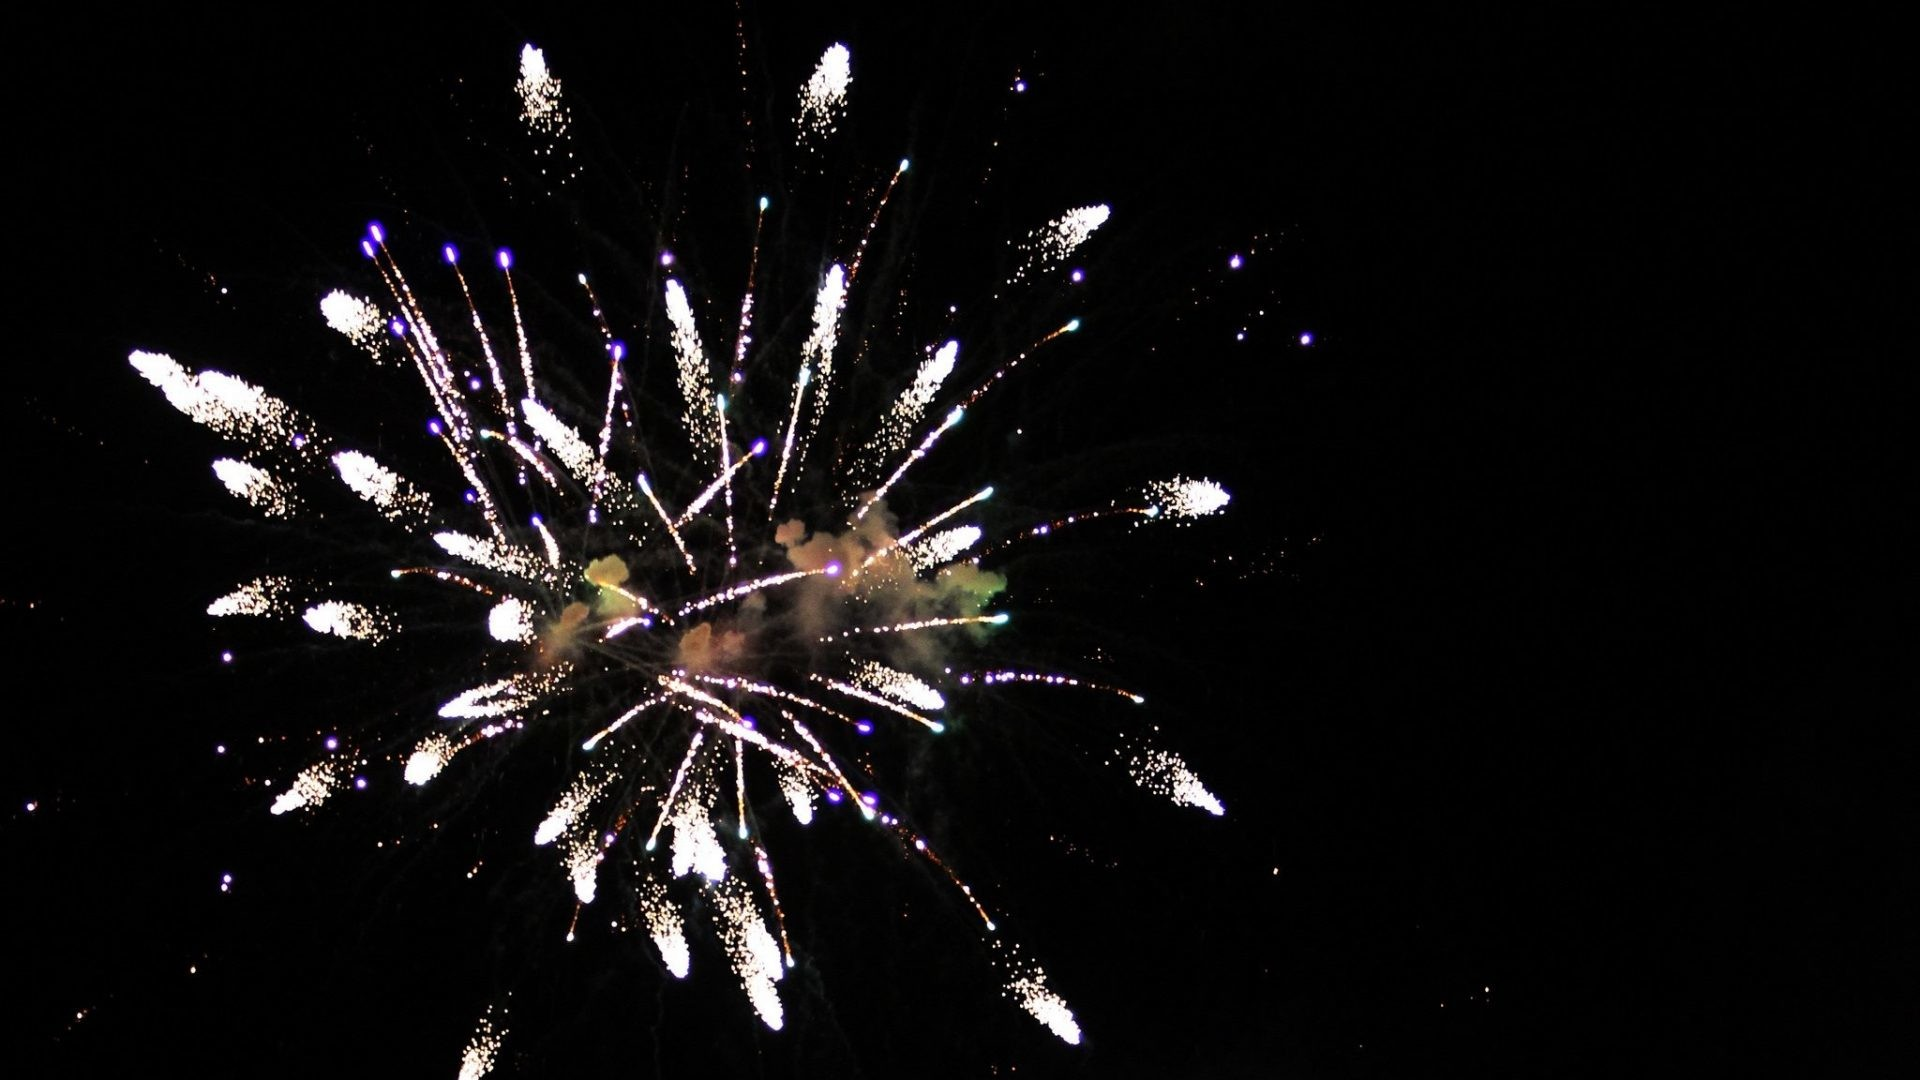 Firework wallpapers screensavers 55 images - Fourth of july live wallpaper ...